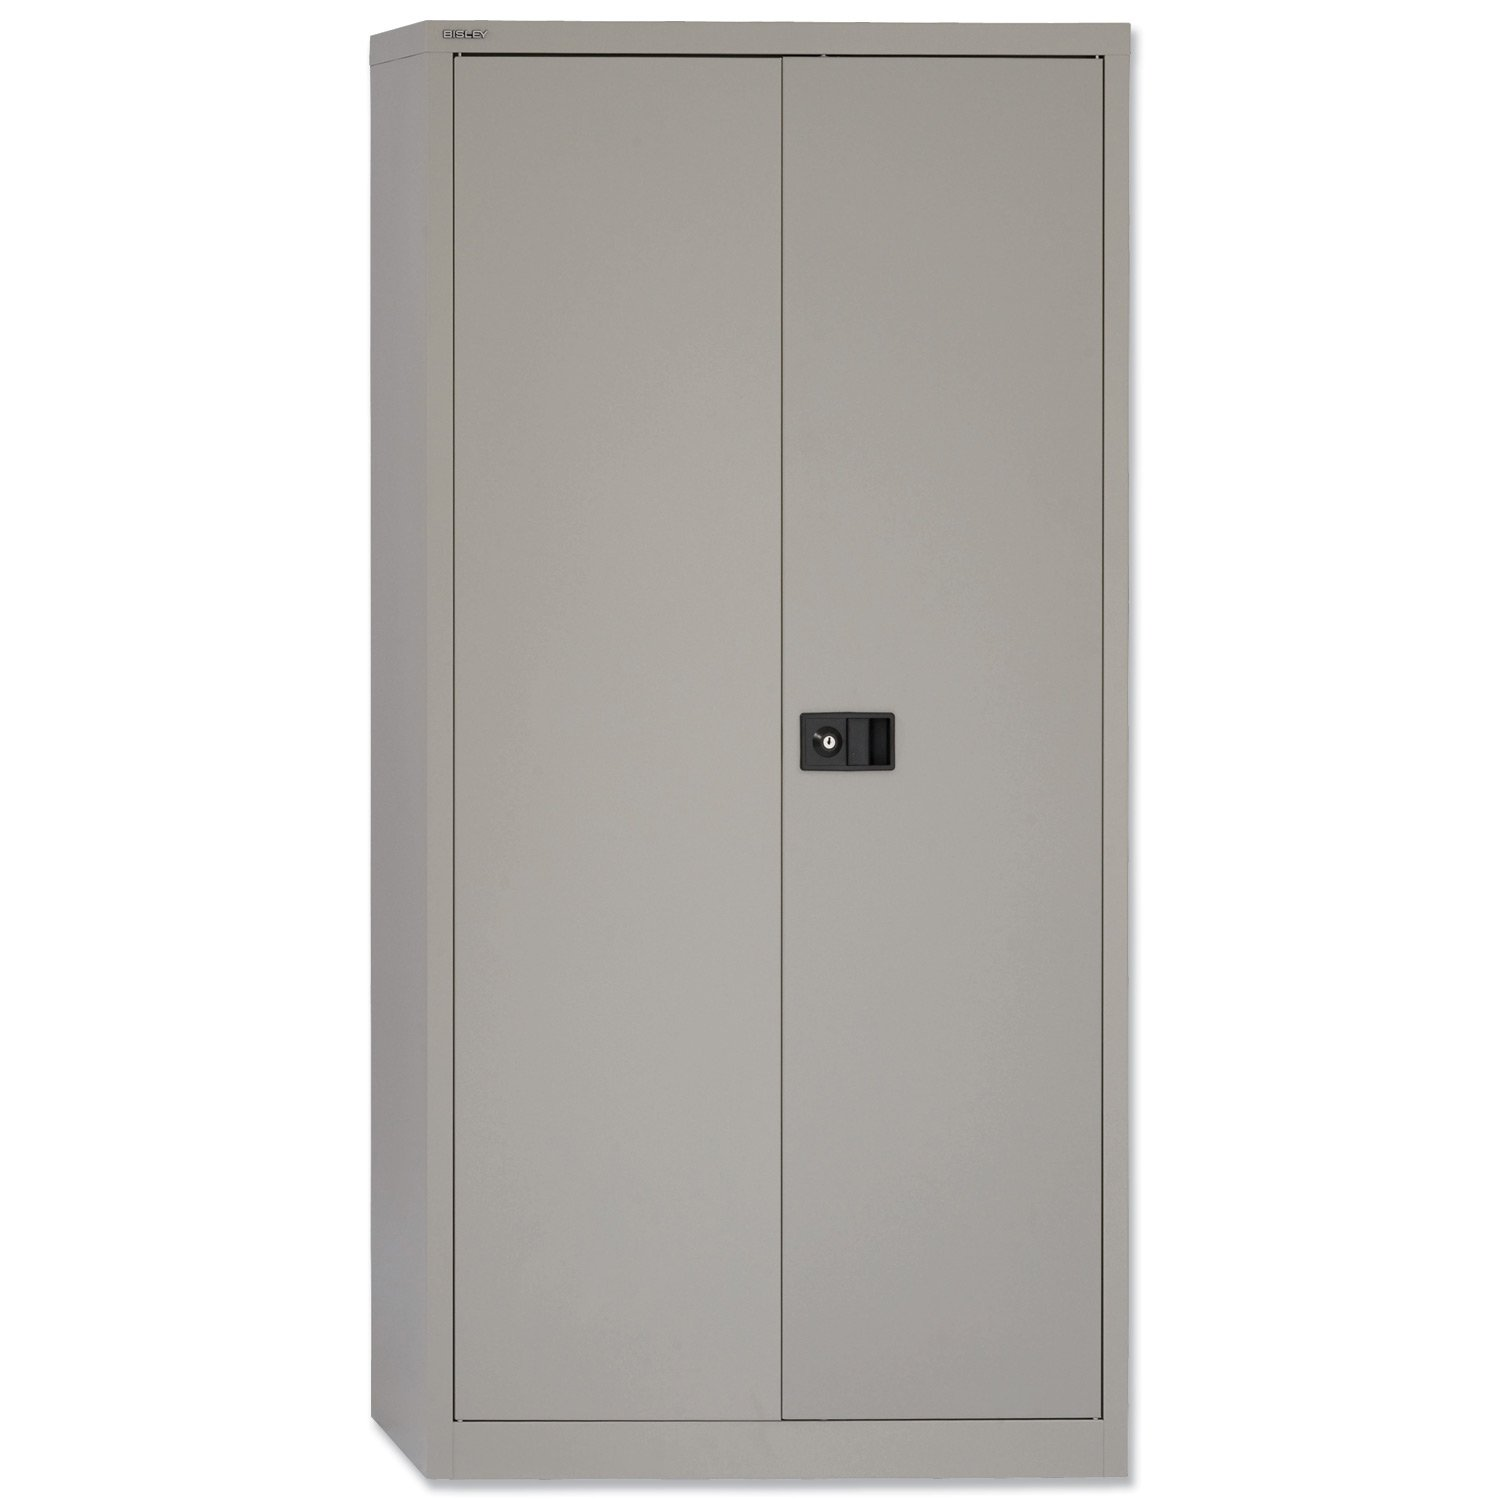 Shaker Armoire together with Lockable Metal Storage Cabi s further Almeria Wall Mount Wine Rack in addition Decorated Acoustic Guitars Home Office Transitional With Music Stand Music Room White Trim likewise Ad7caf195f2131ed. on large storage cabinet plans